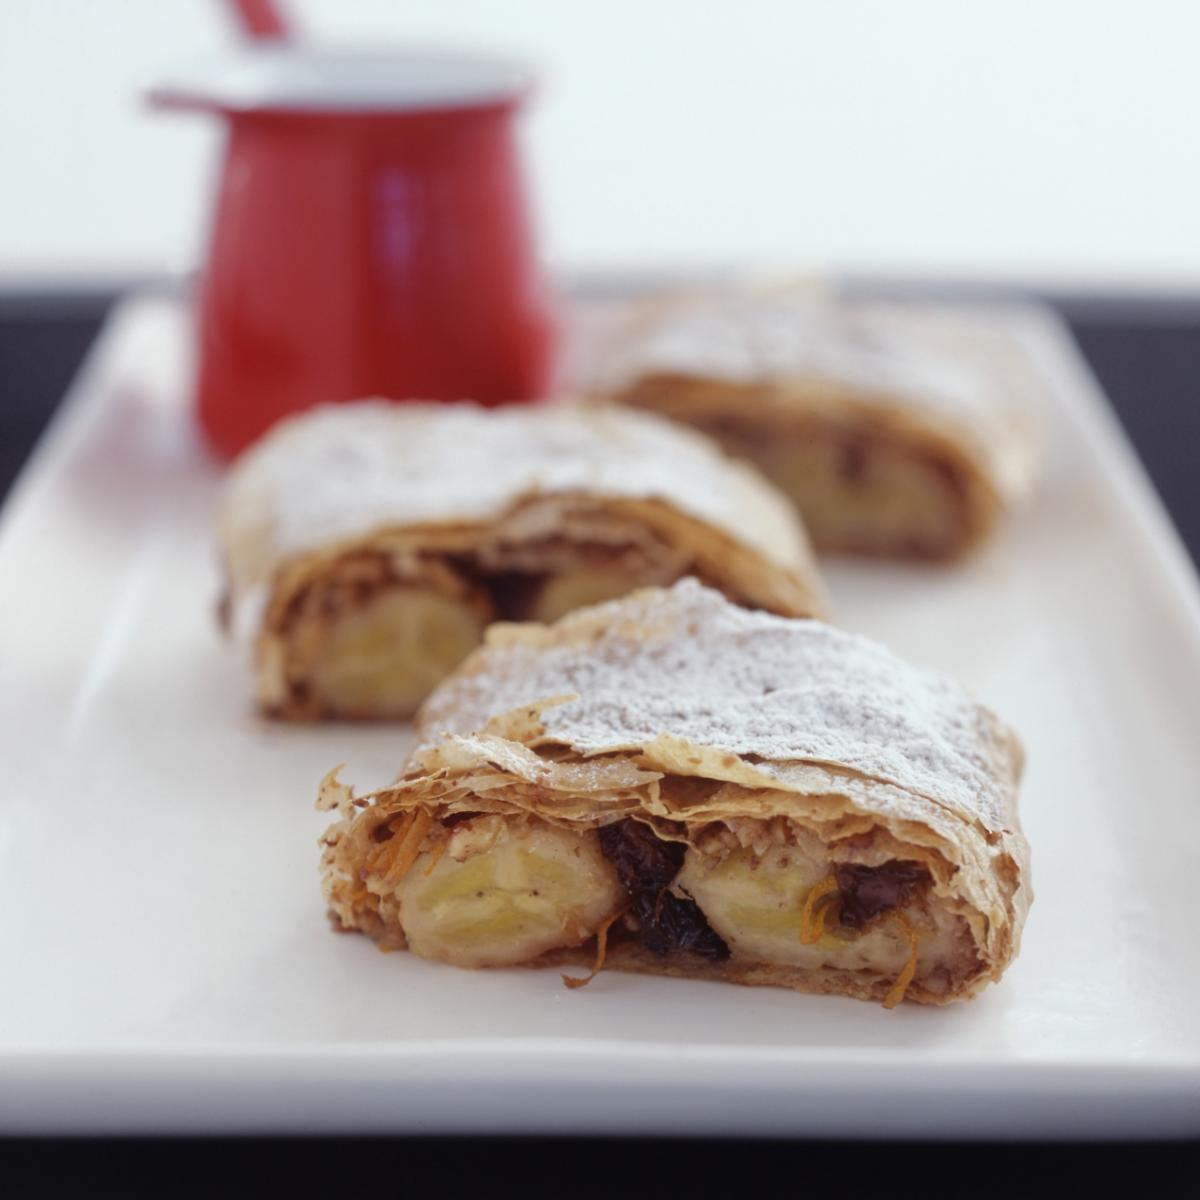 A picture of Delia's Caribbean Banana and Raisin Strudel recipe